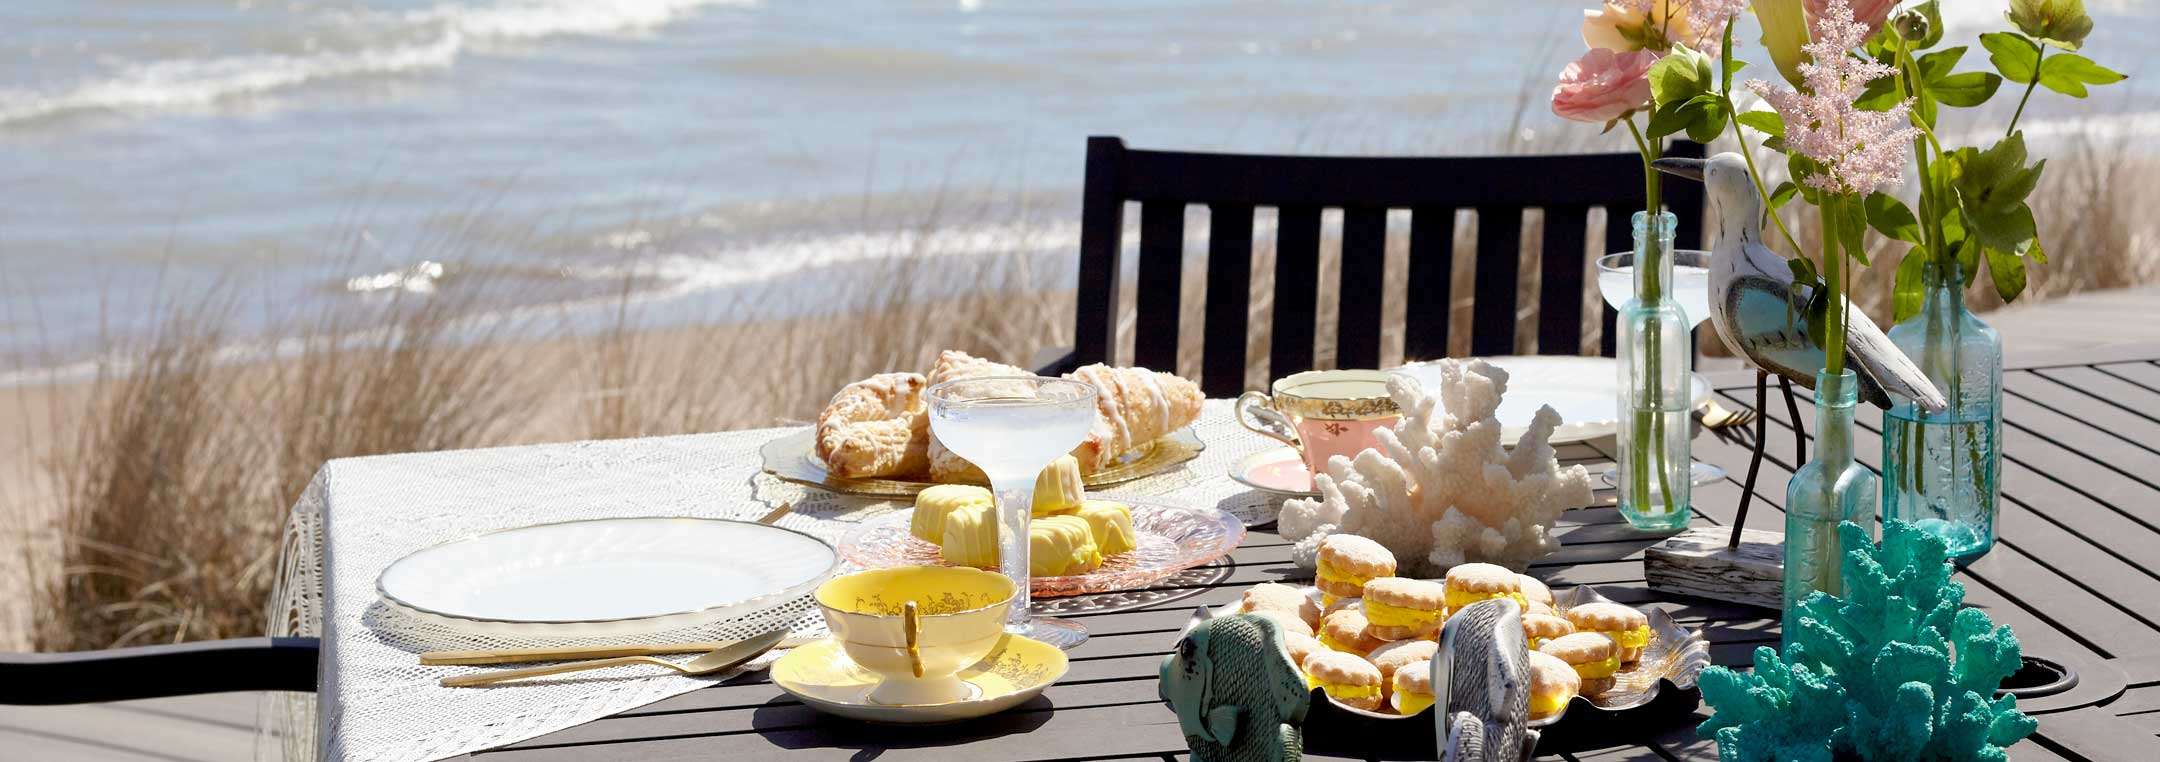 ideas for throwing a mermaid themed party like a beach setting and tea party tablescape